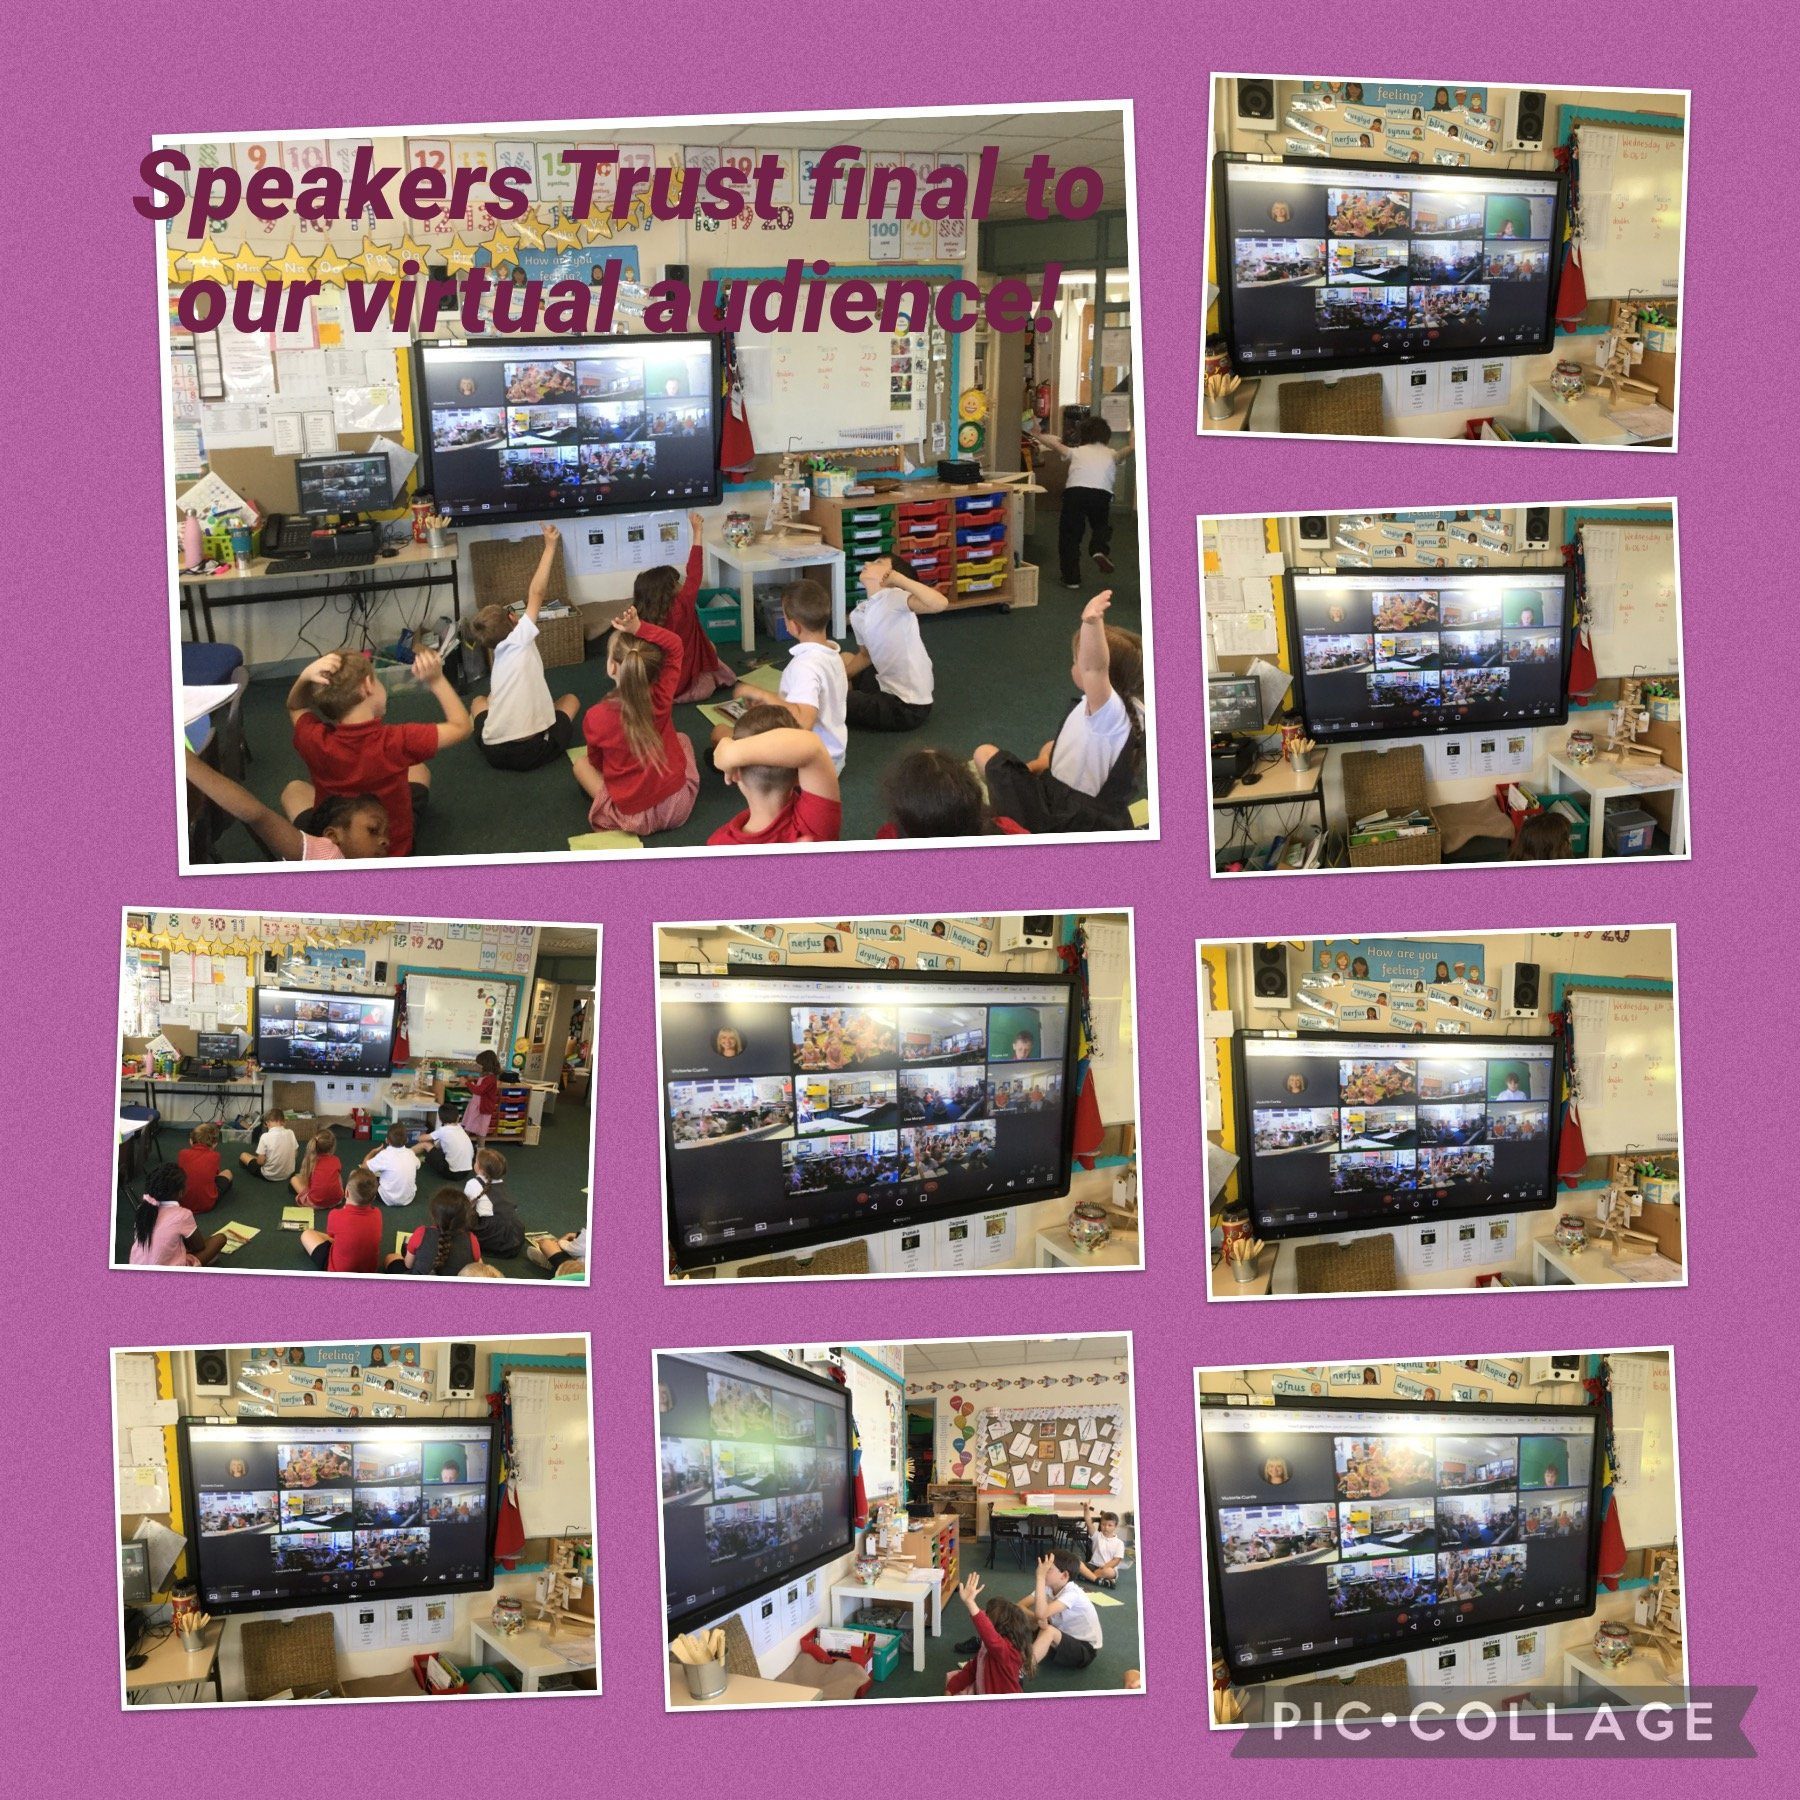 Our Speakers Trust final to our virtual audience.